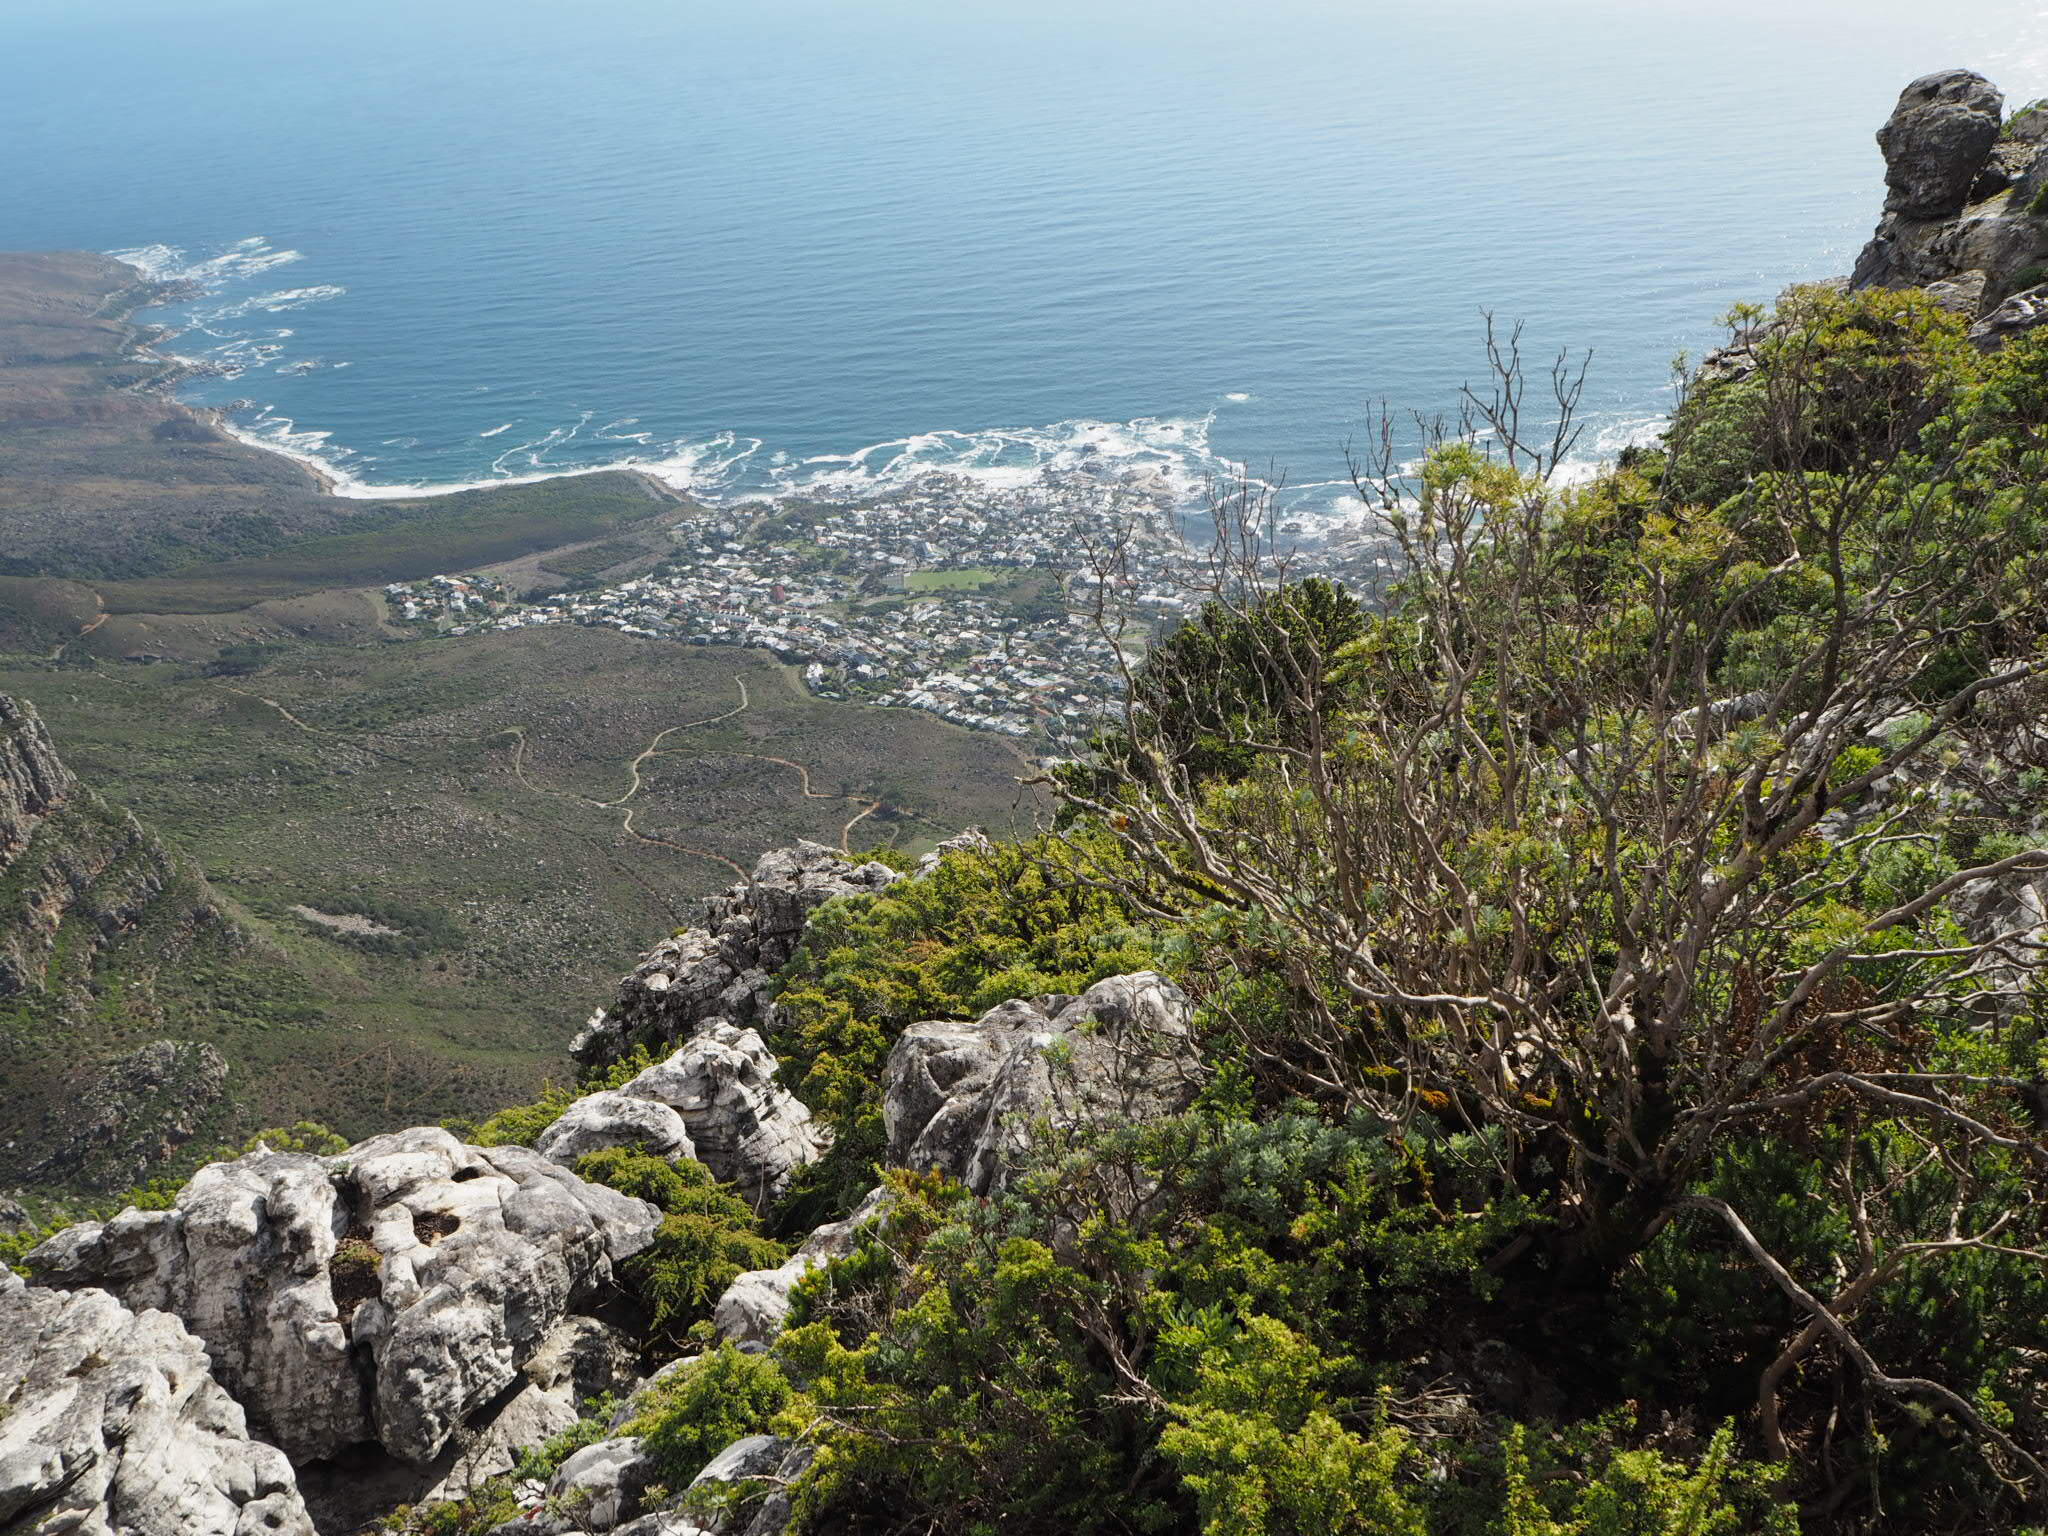 Above the clouds, overlooking Camps Bay and Bakoven from Table Mountain National Park.